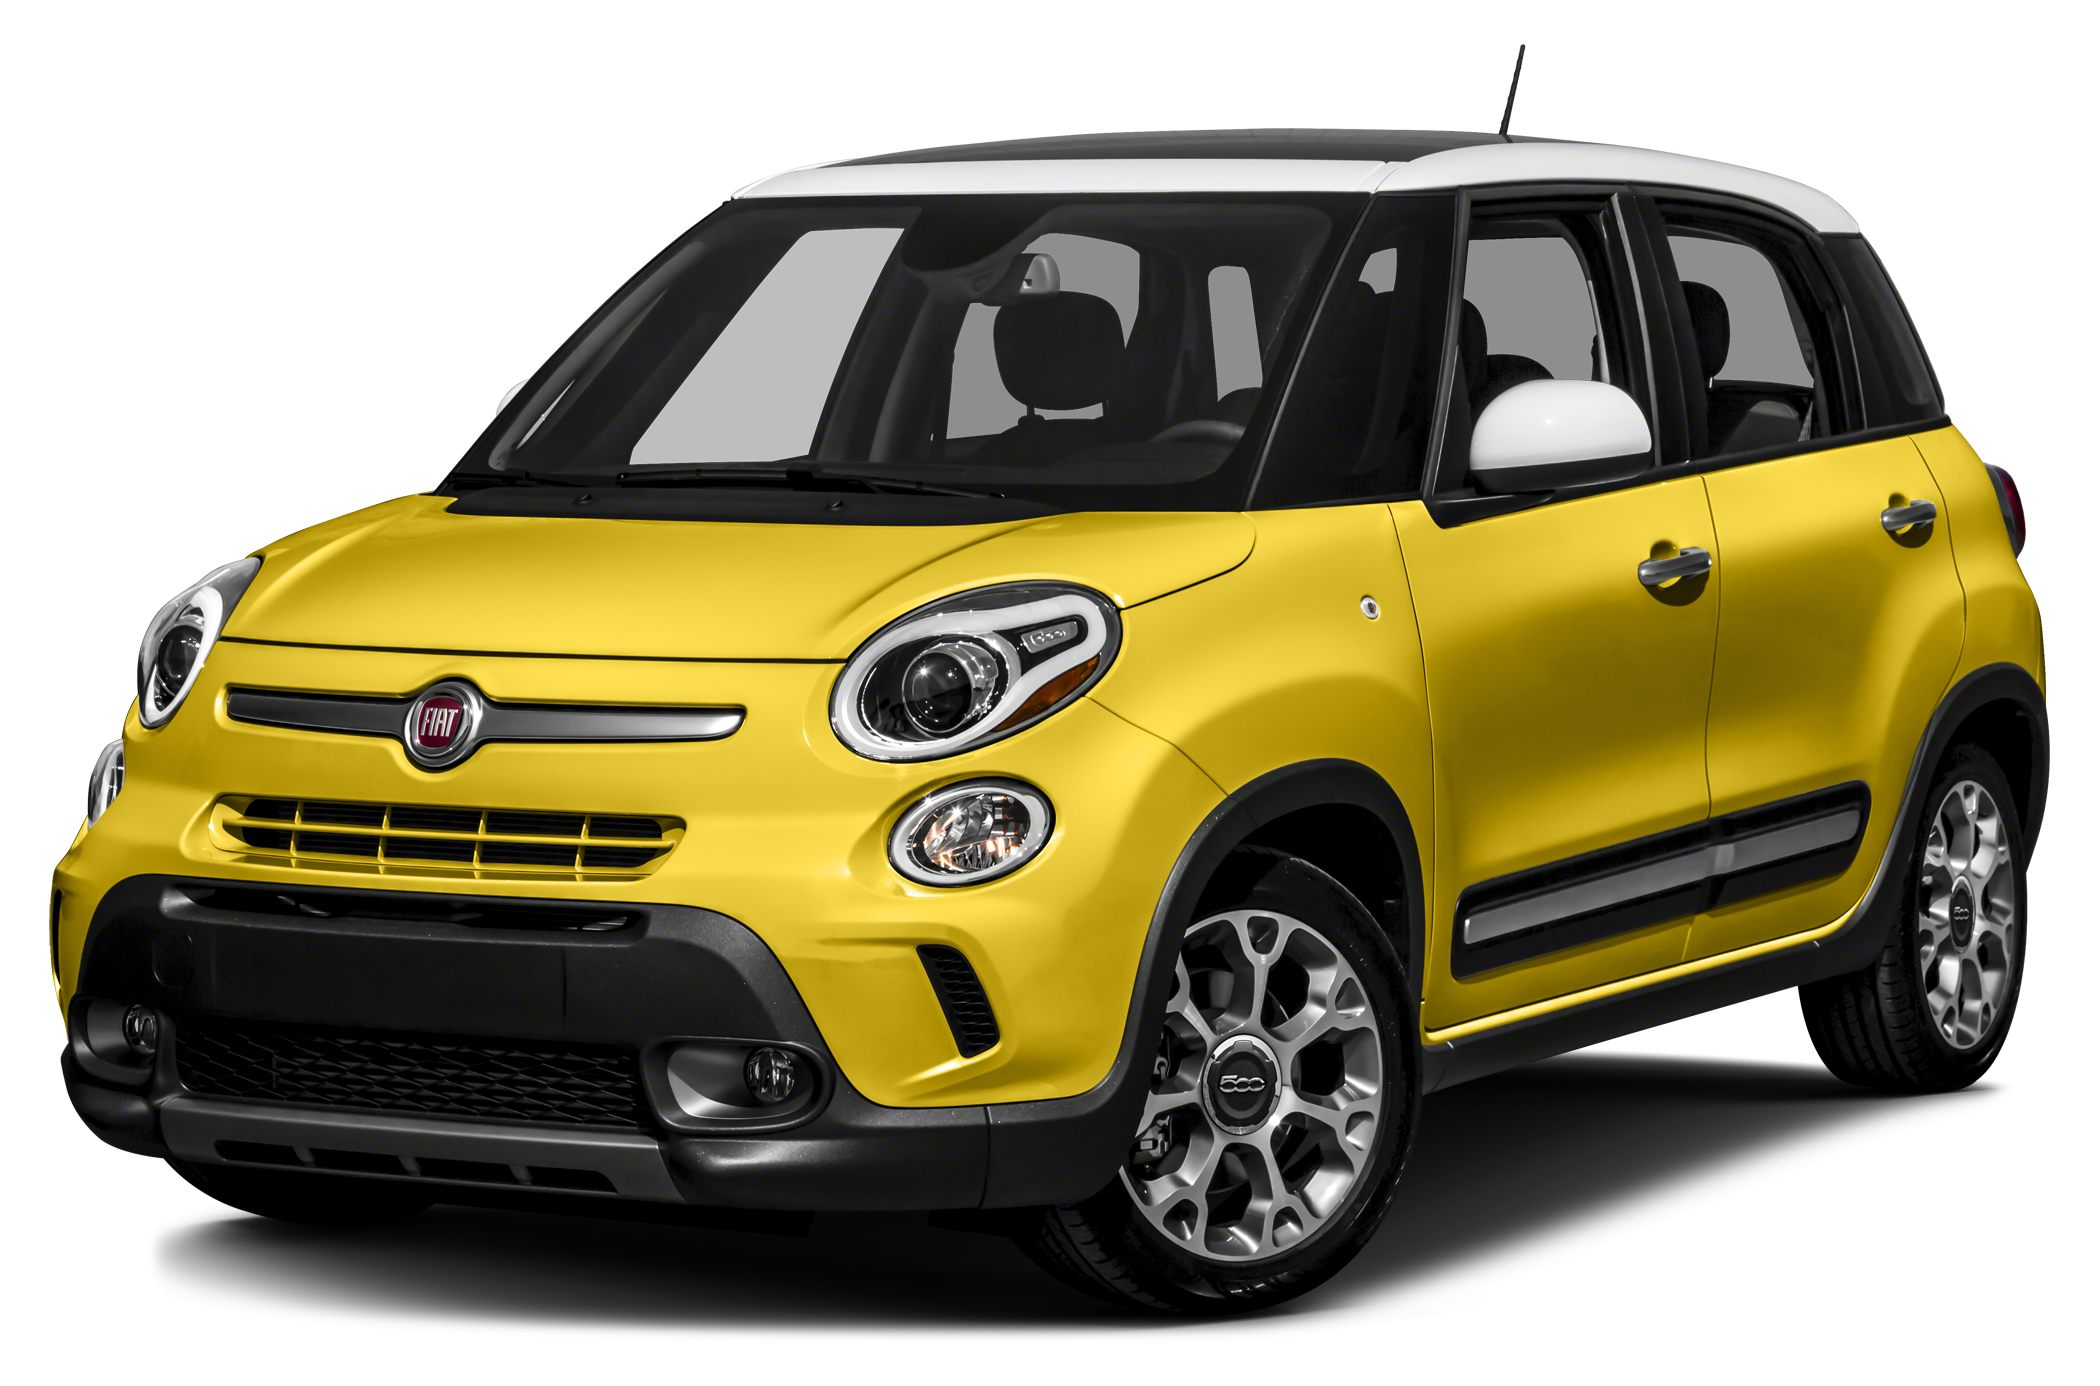 2014 FIAT 500L Trekking 4dr Hatchback Specs and Prices